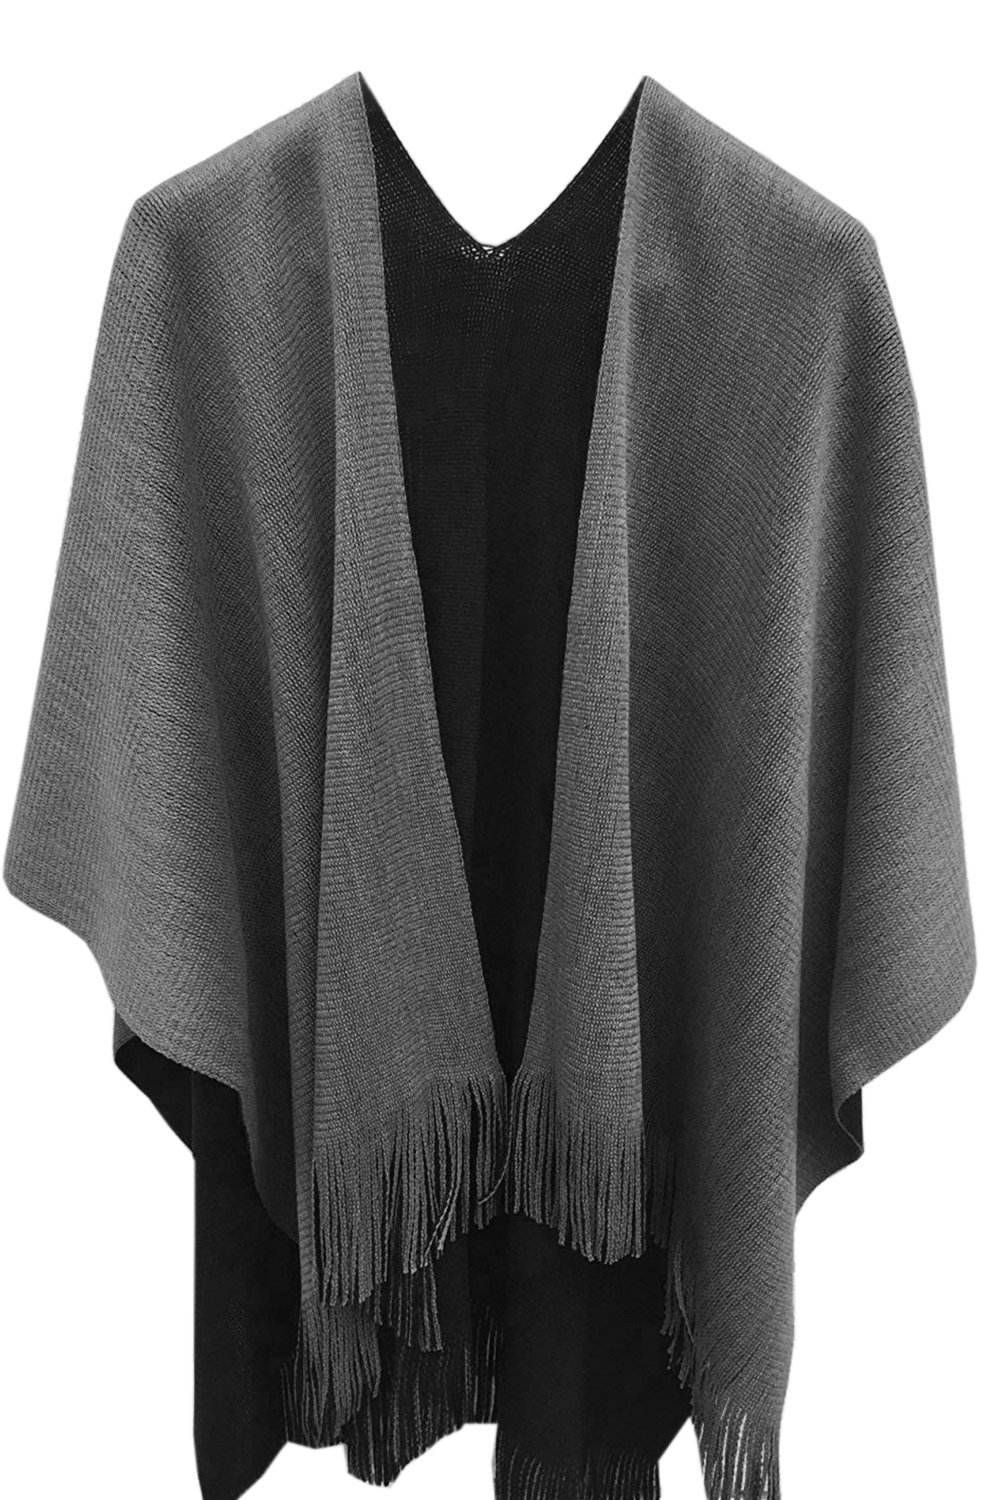 Timemory Womens Winter Solid Knitted Cashmere Poncho Capes Shawl Sweater Gray Gray One Size